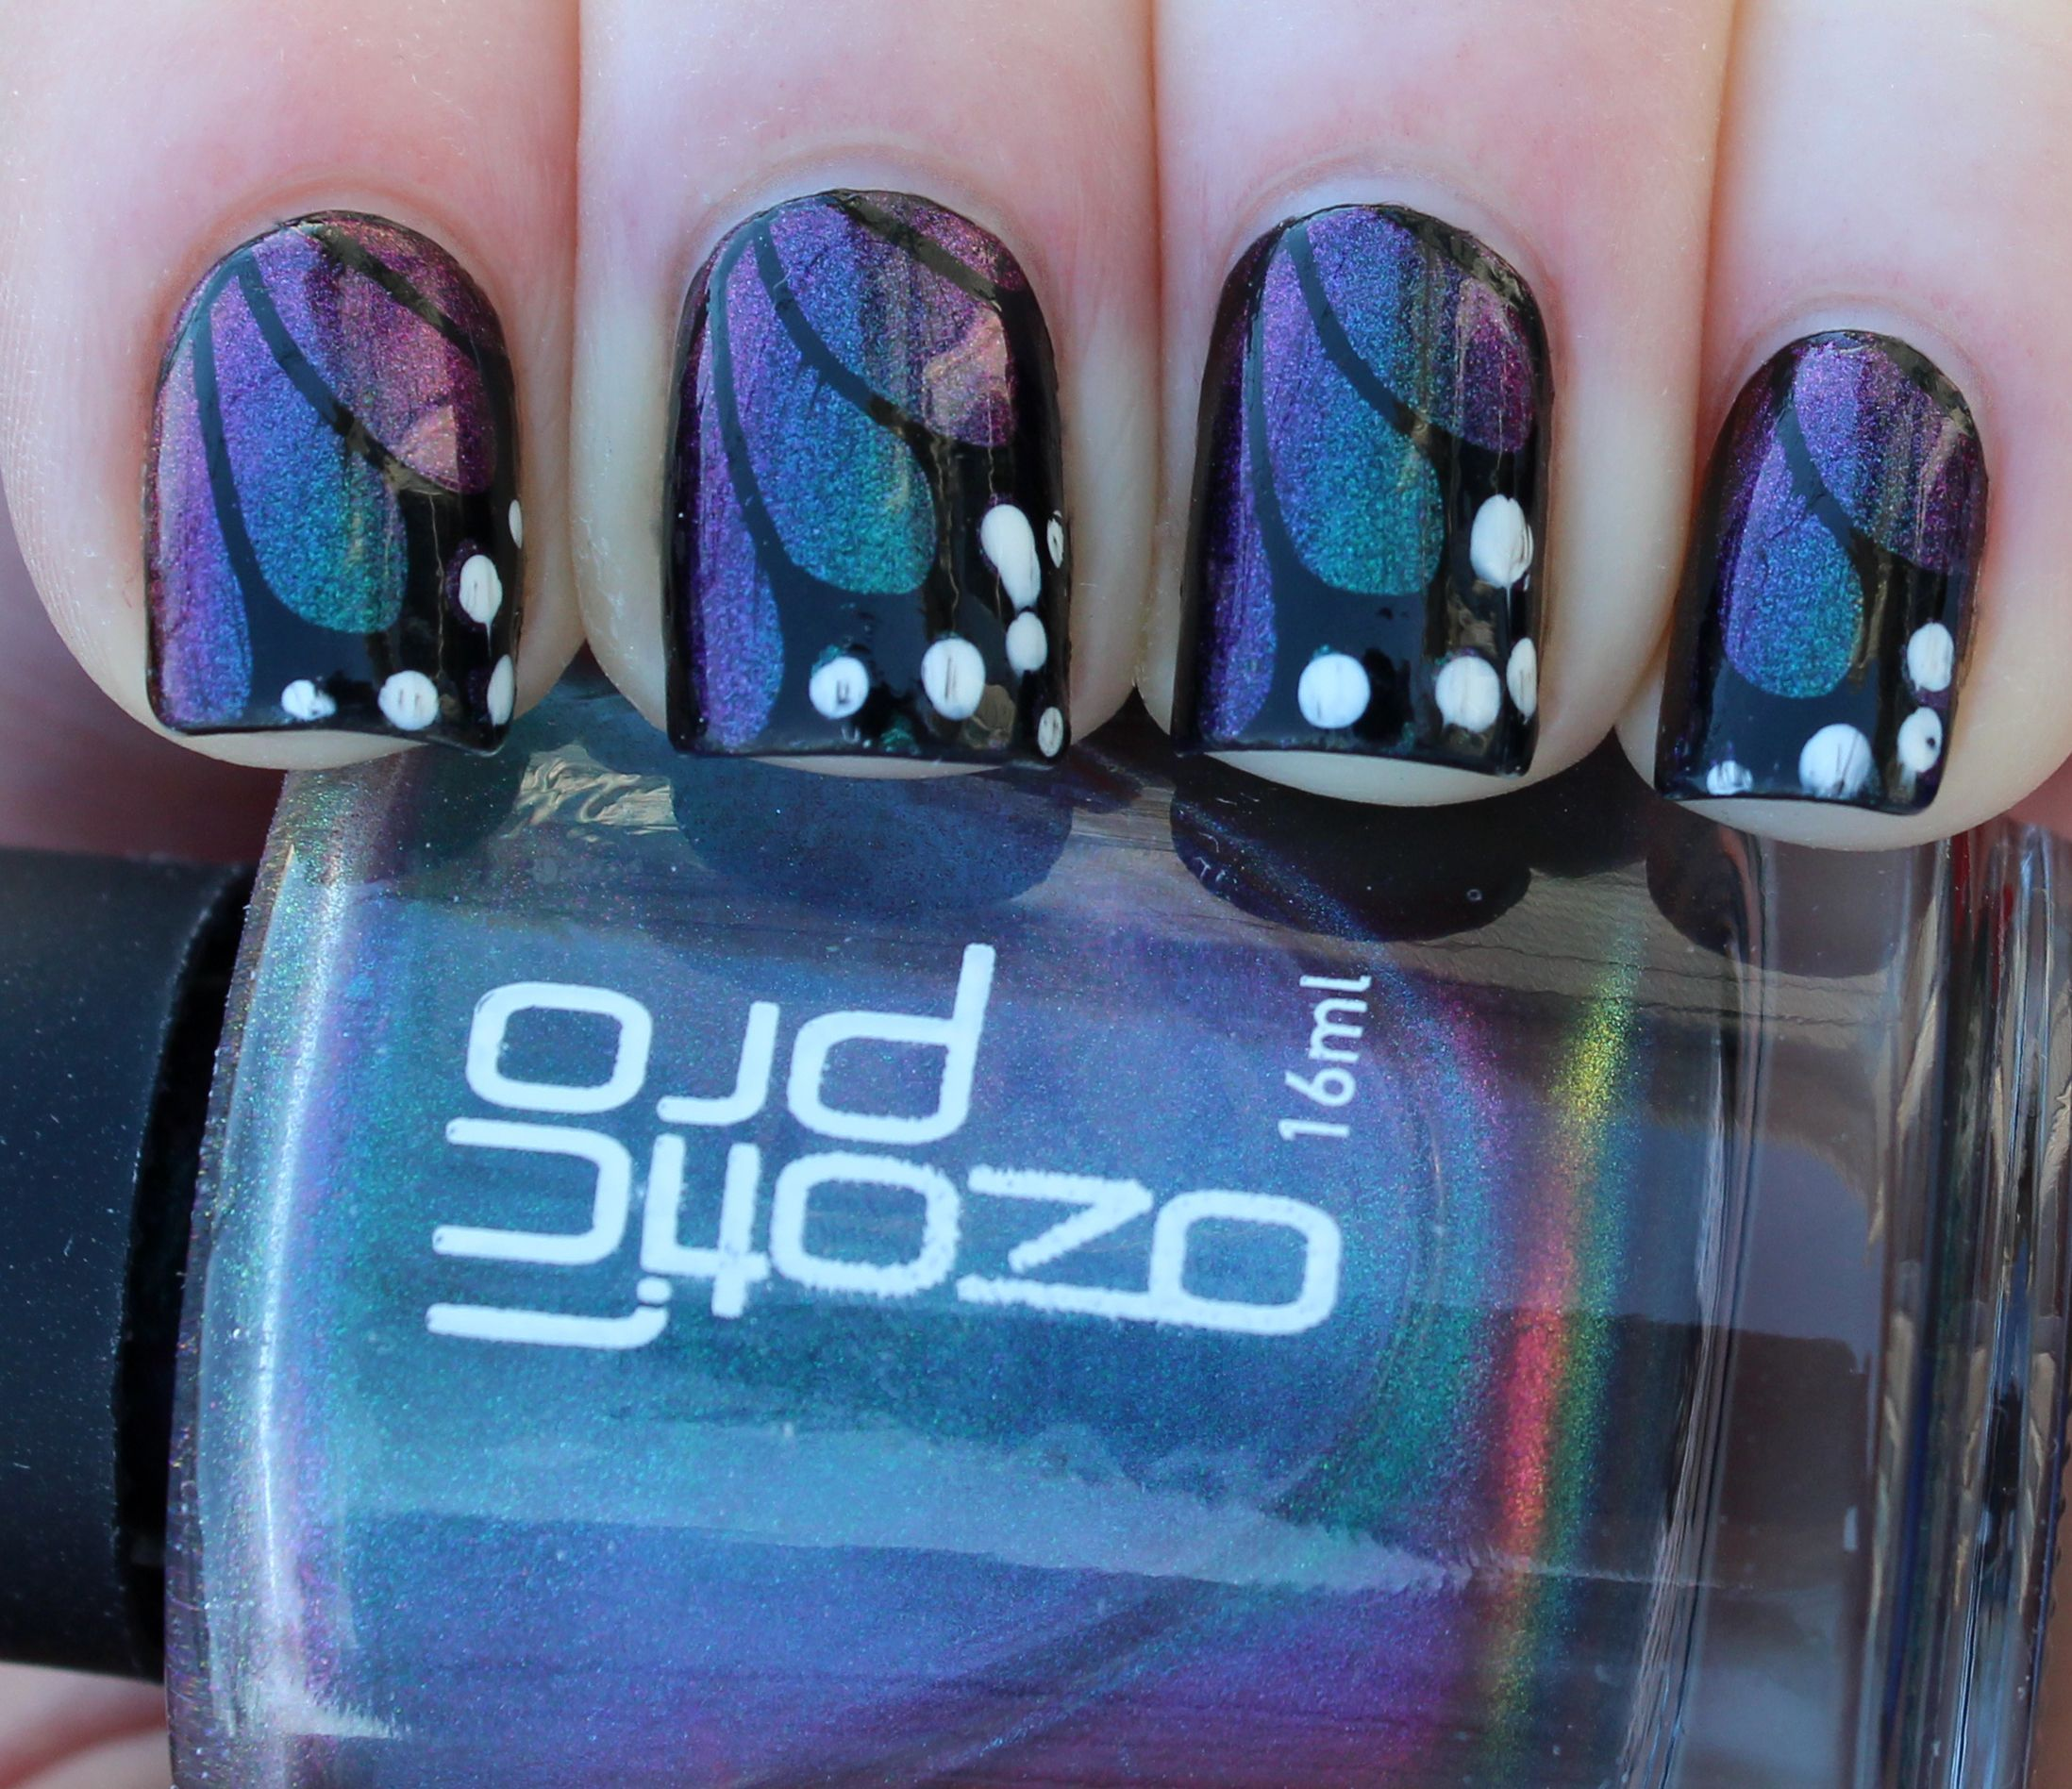 Butterfly wing nails   nails   Pinterest   Funky nail art, Funky ...